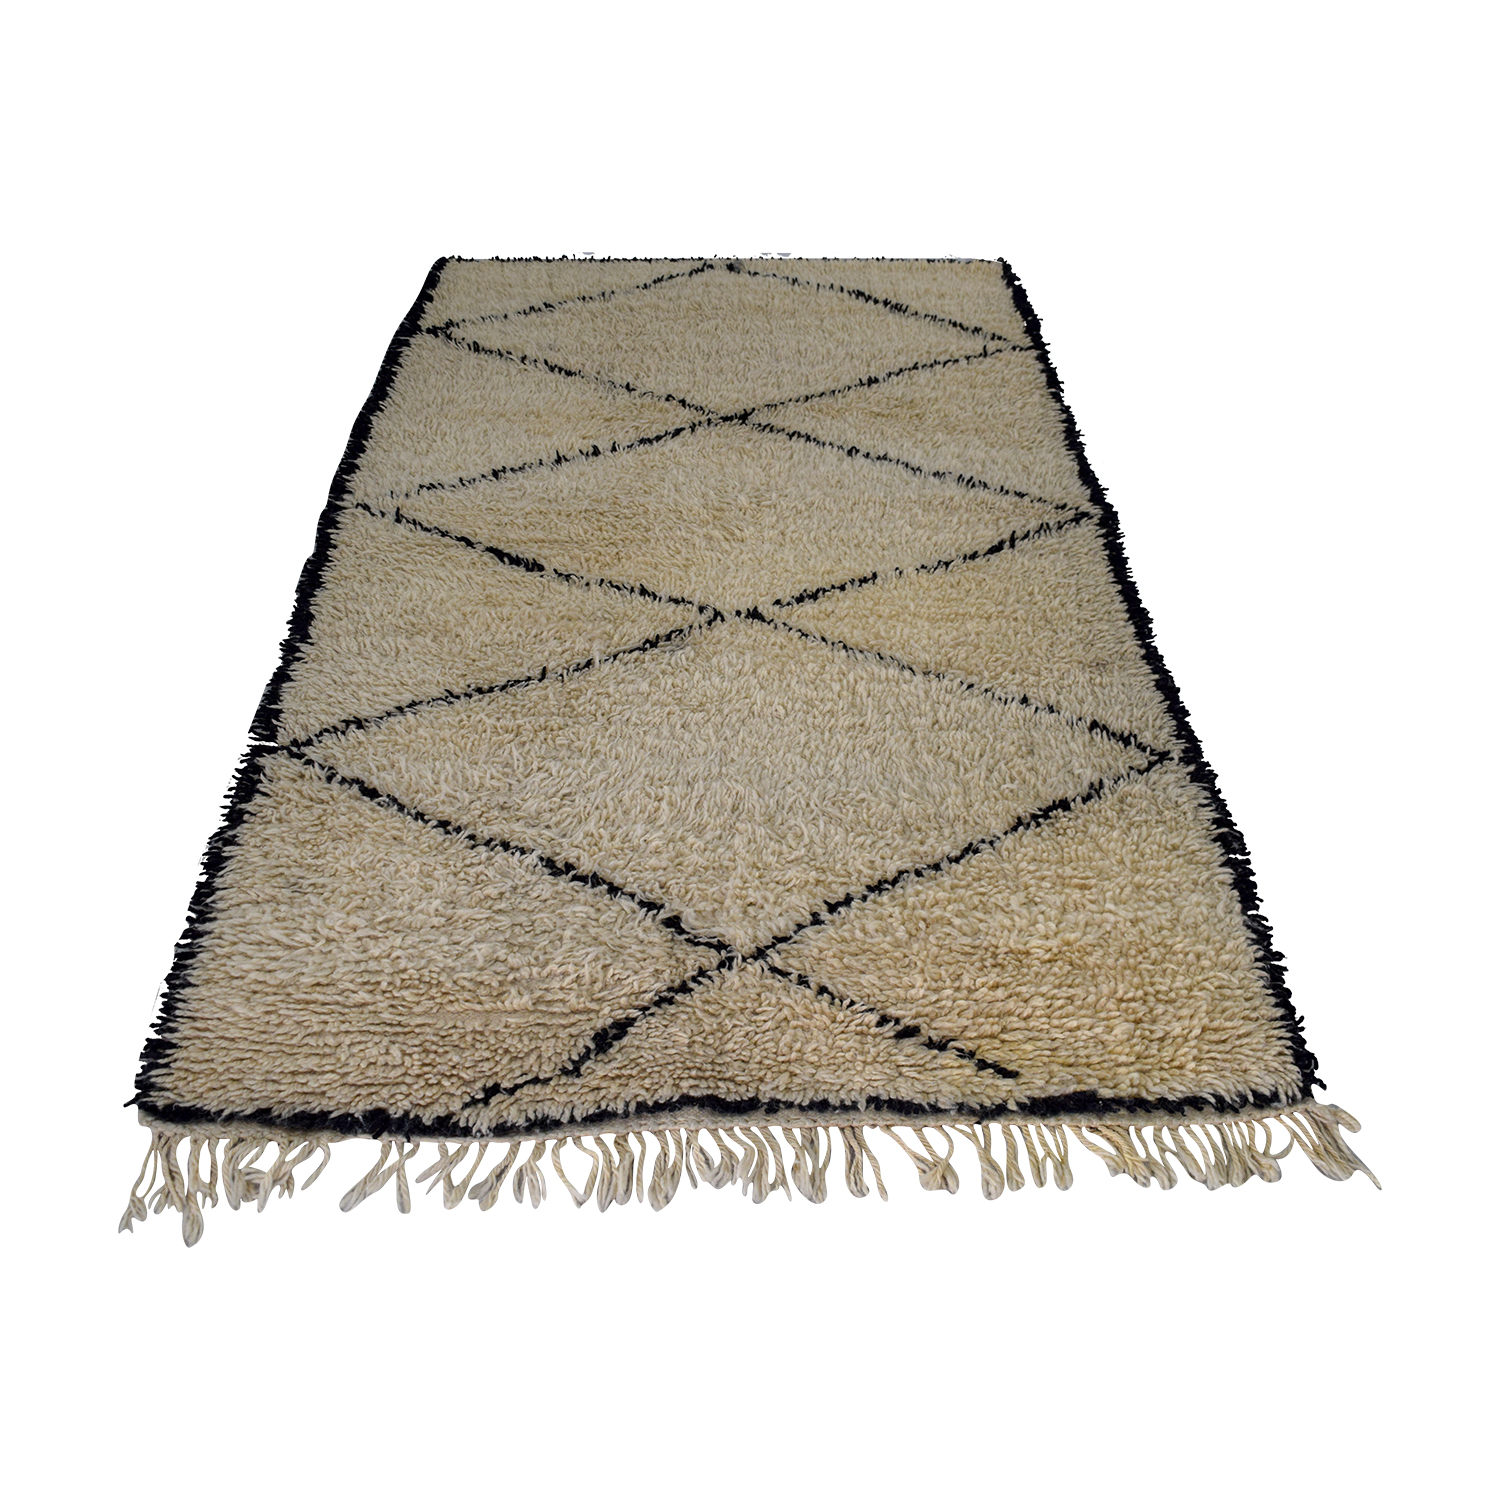 Black and Tan Moroccan Rug nj